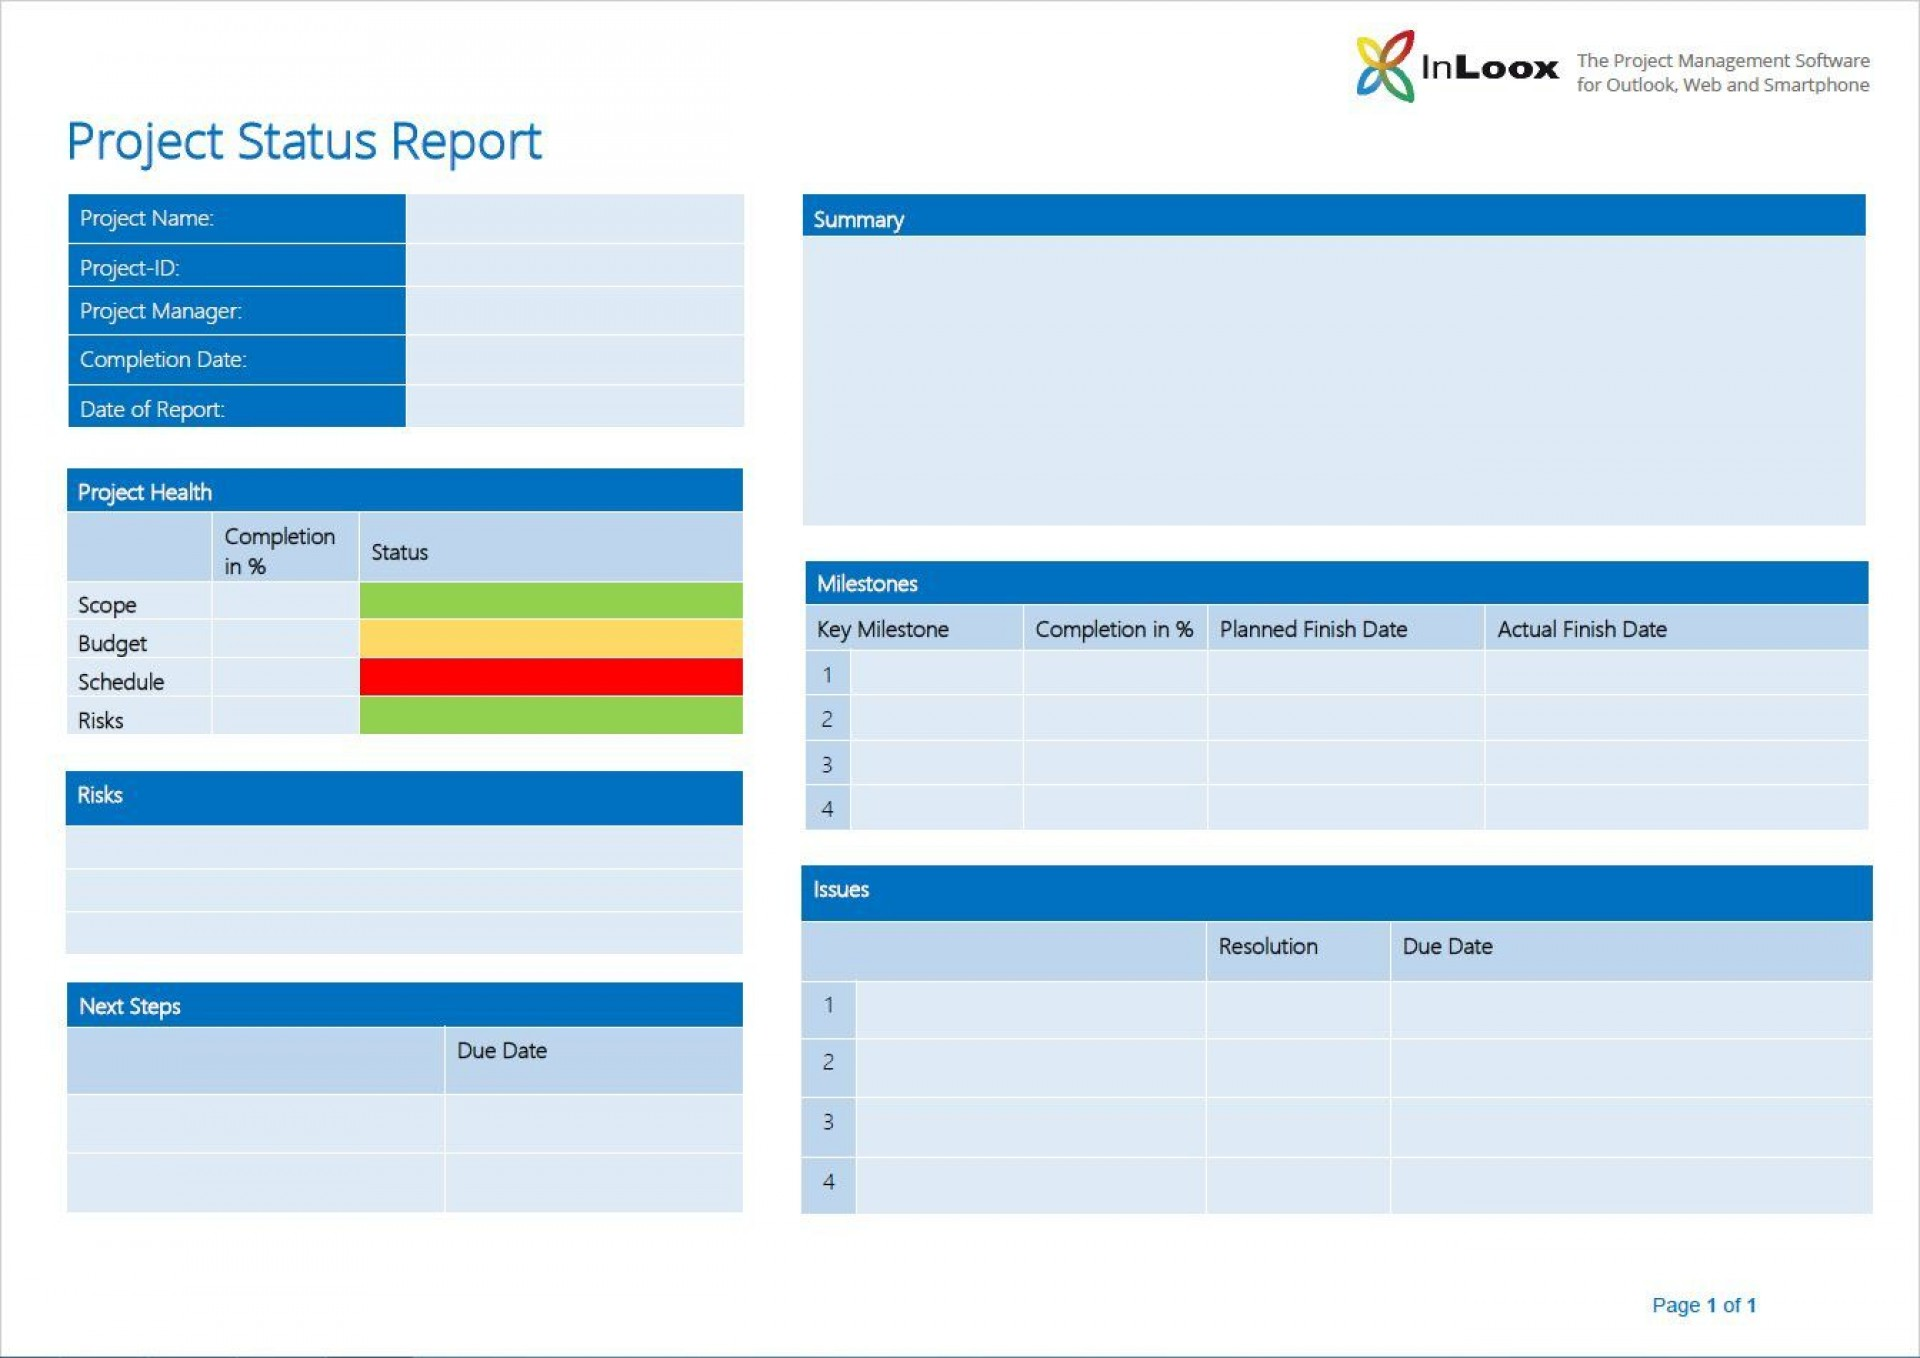 007 Staggering Project Management Statu Report Example Image  Template Word Agile Progres1920